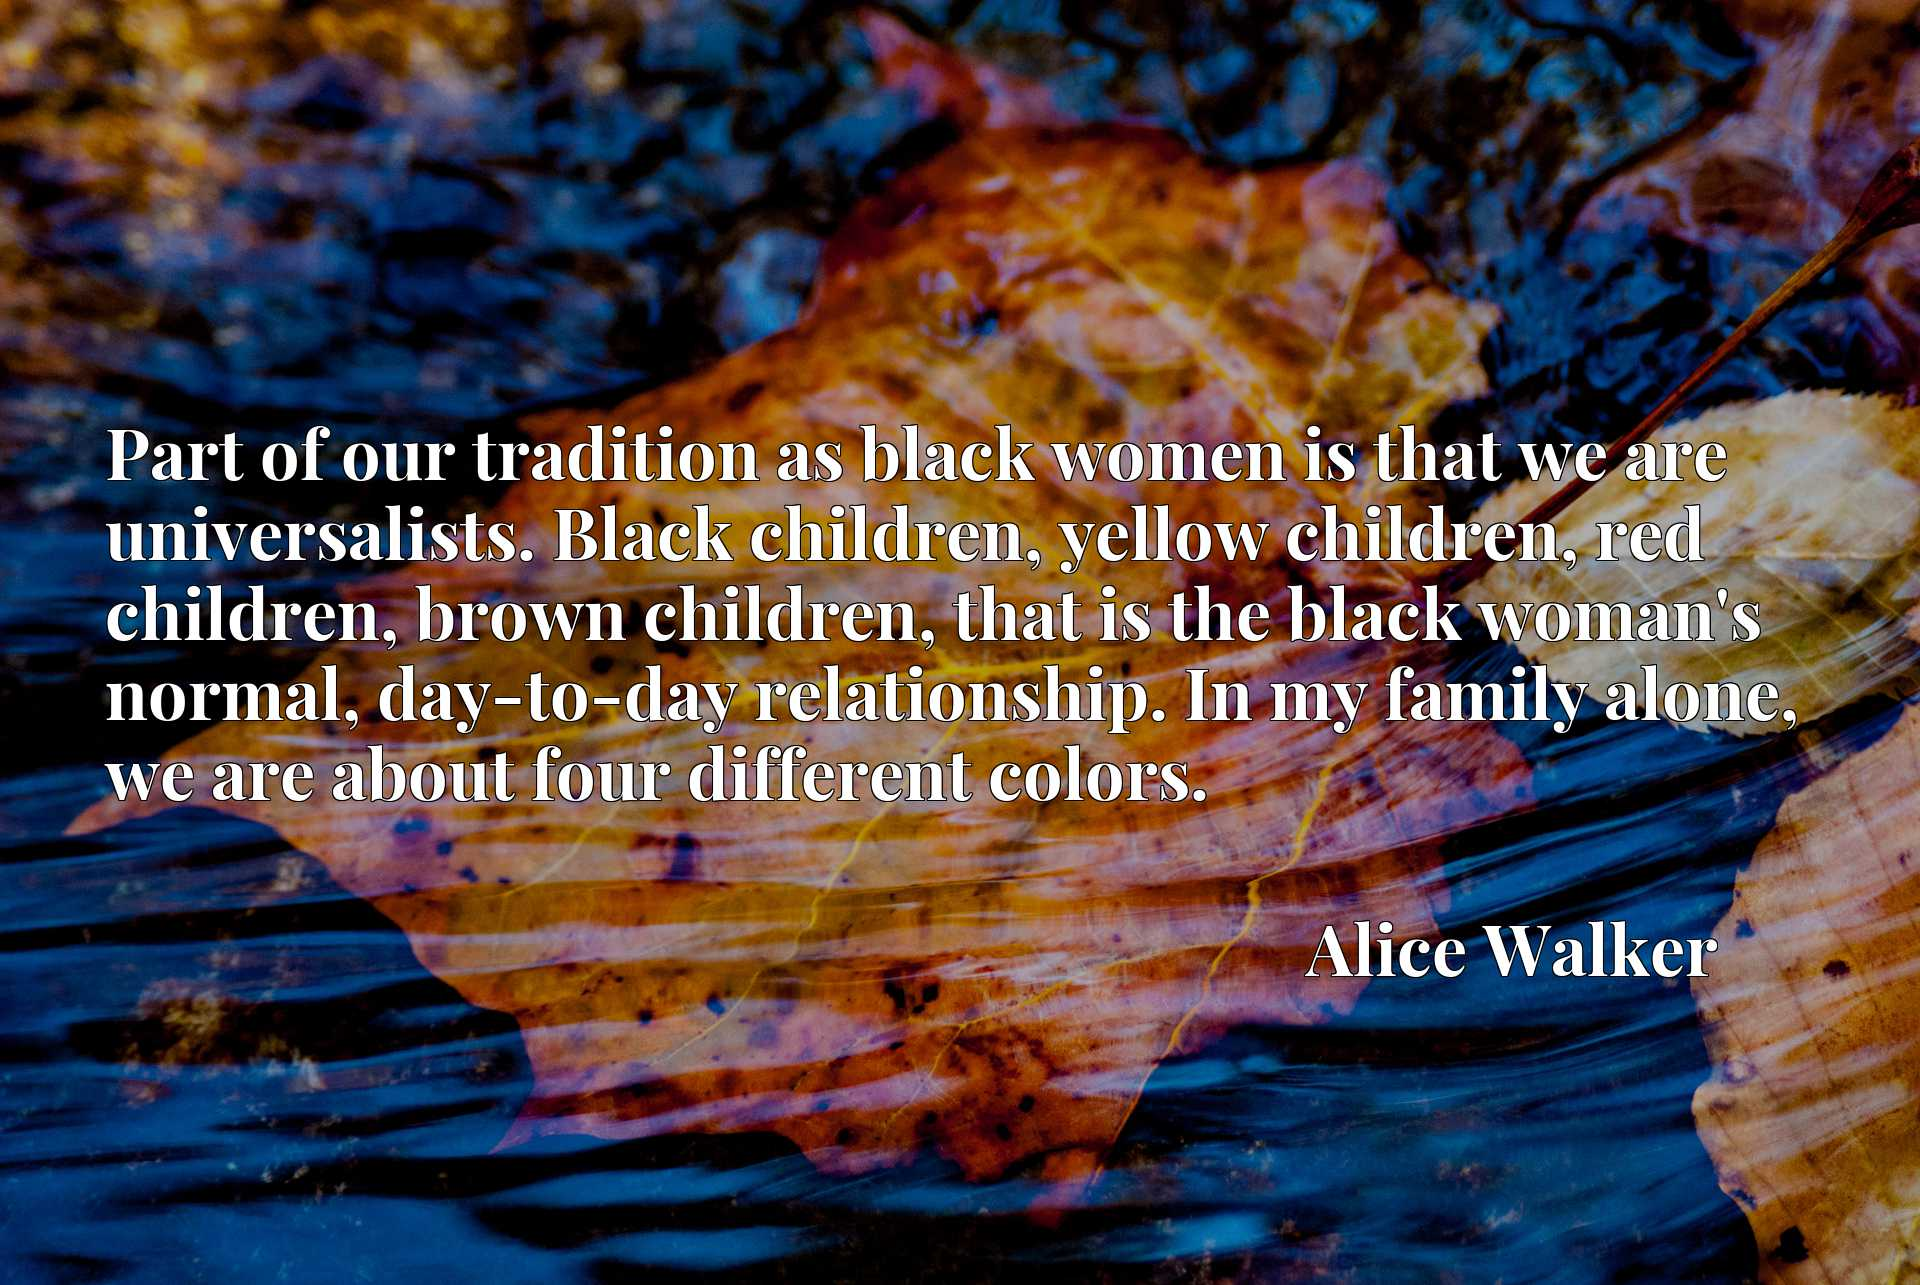 Part of our tradition as black women is that we are universalists. Black children, yellow children, red children, brown children, that is the black woman's normal, day-to-day relationship. In my family alone, we are about four different colors.